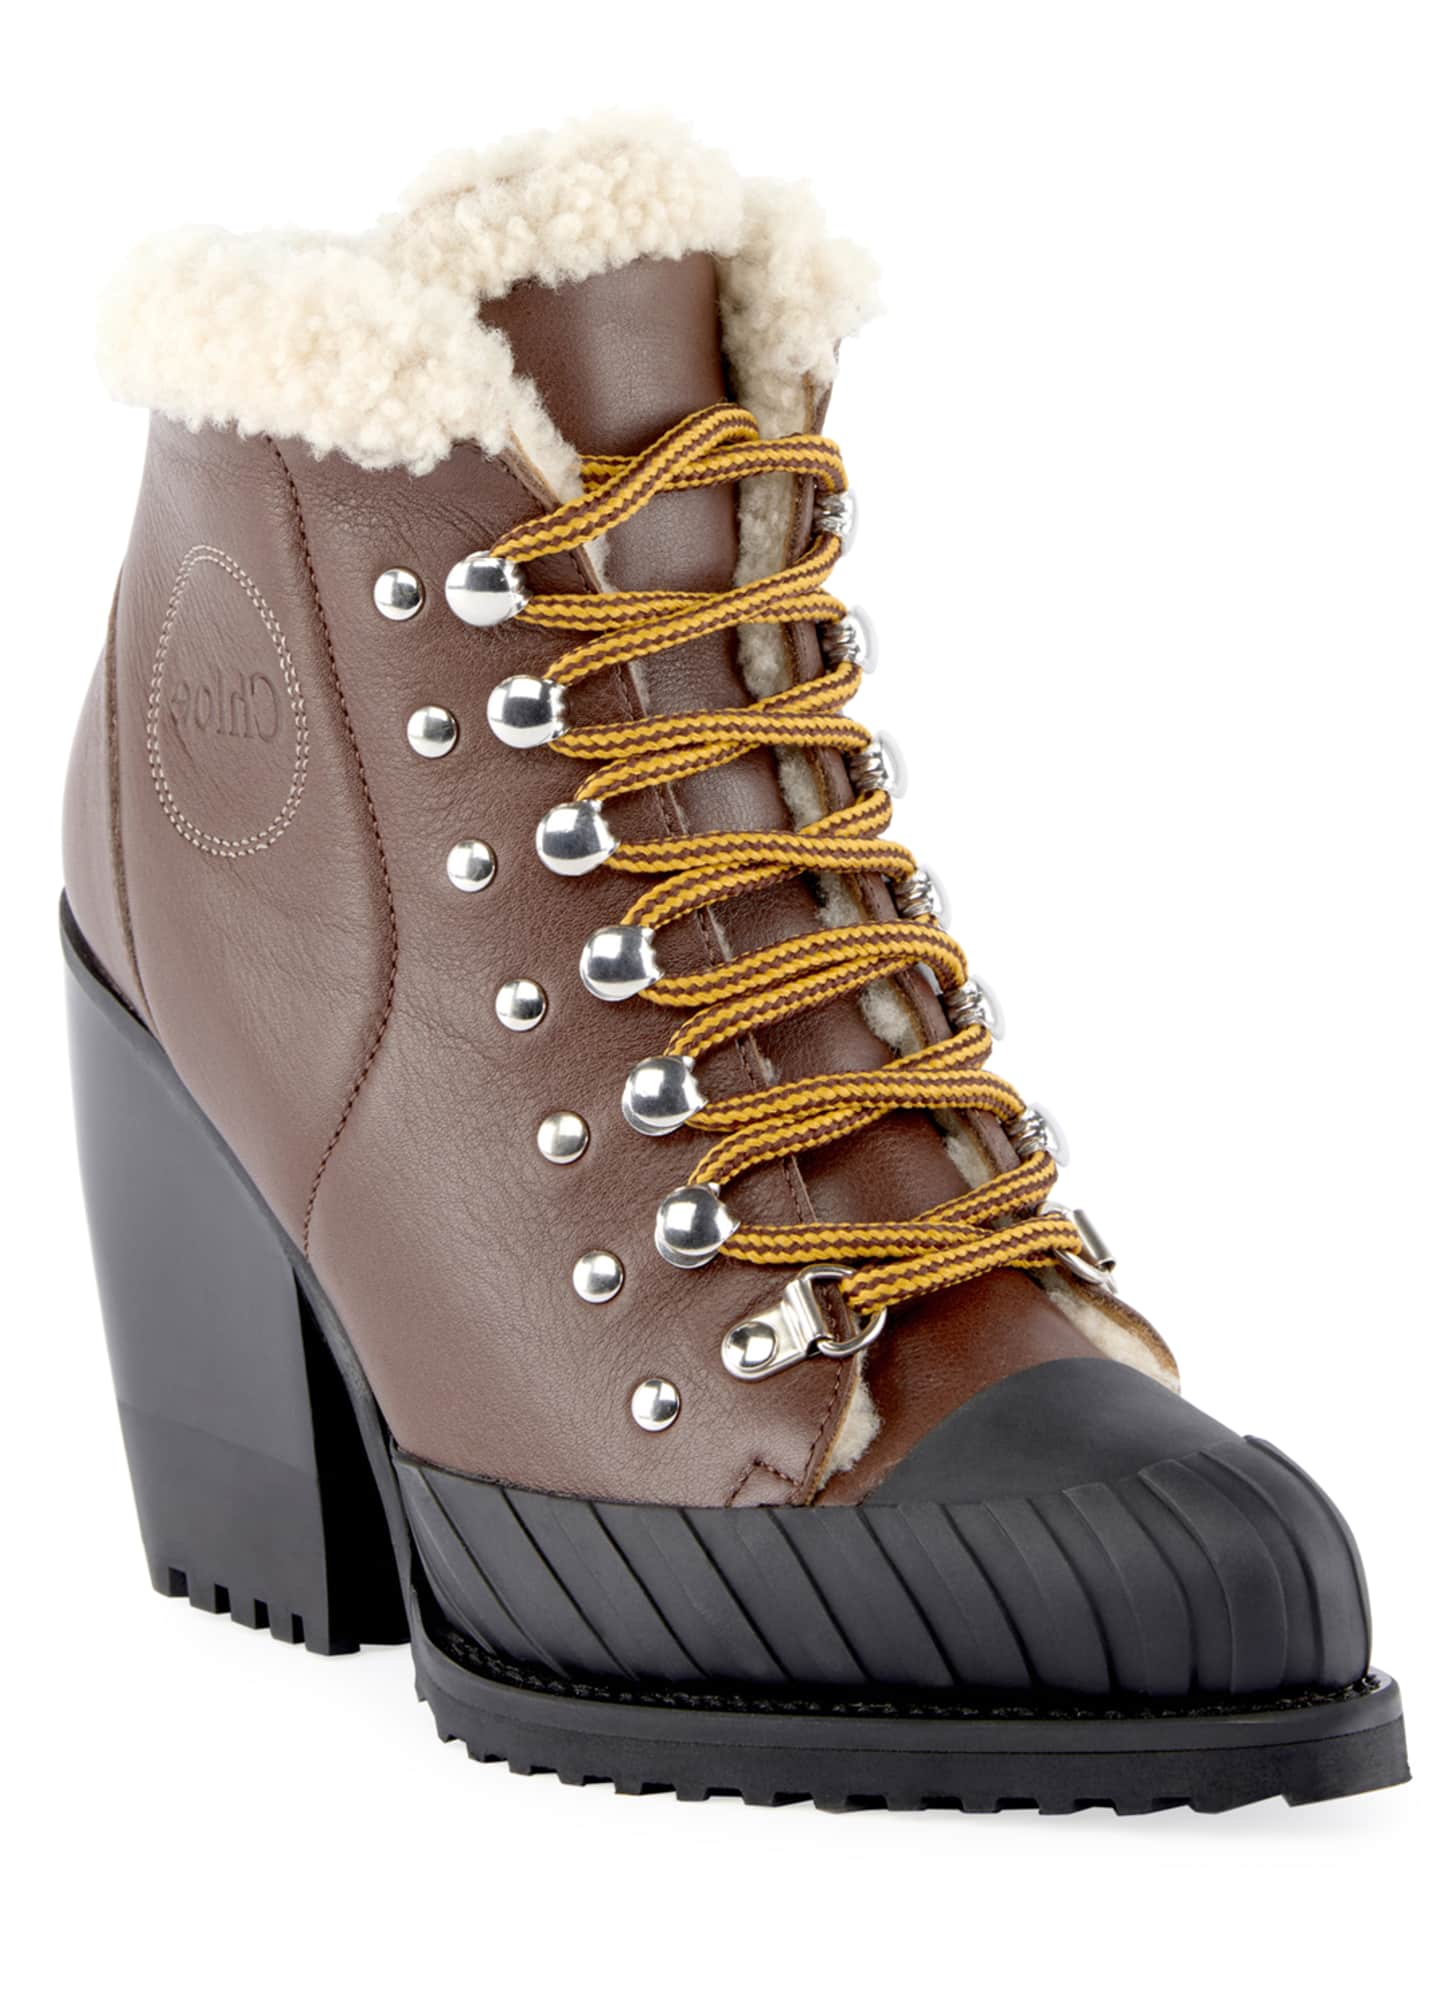 Chloe Lace-Up Fur-Trimmed Boots